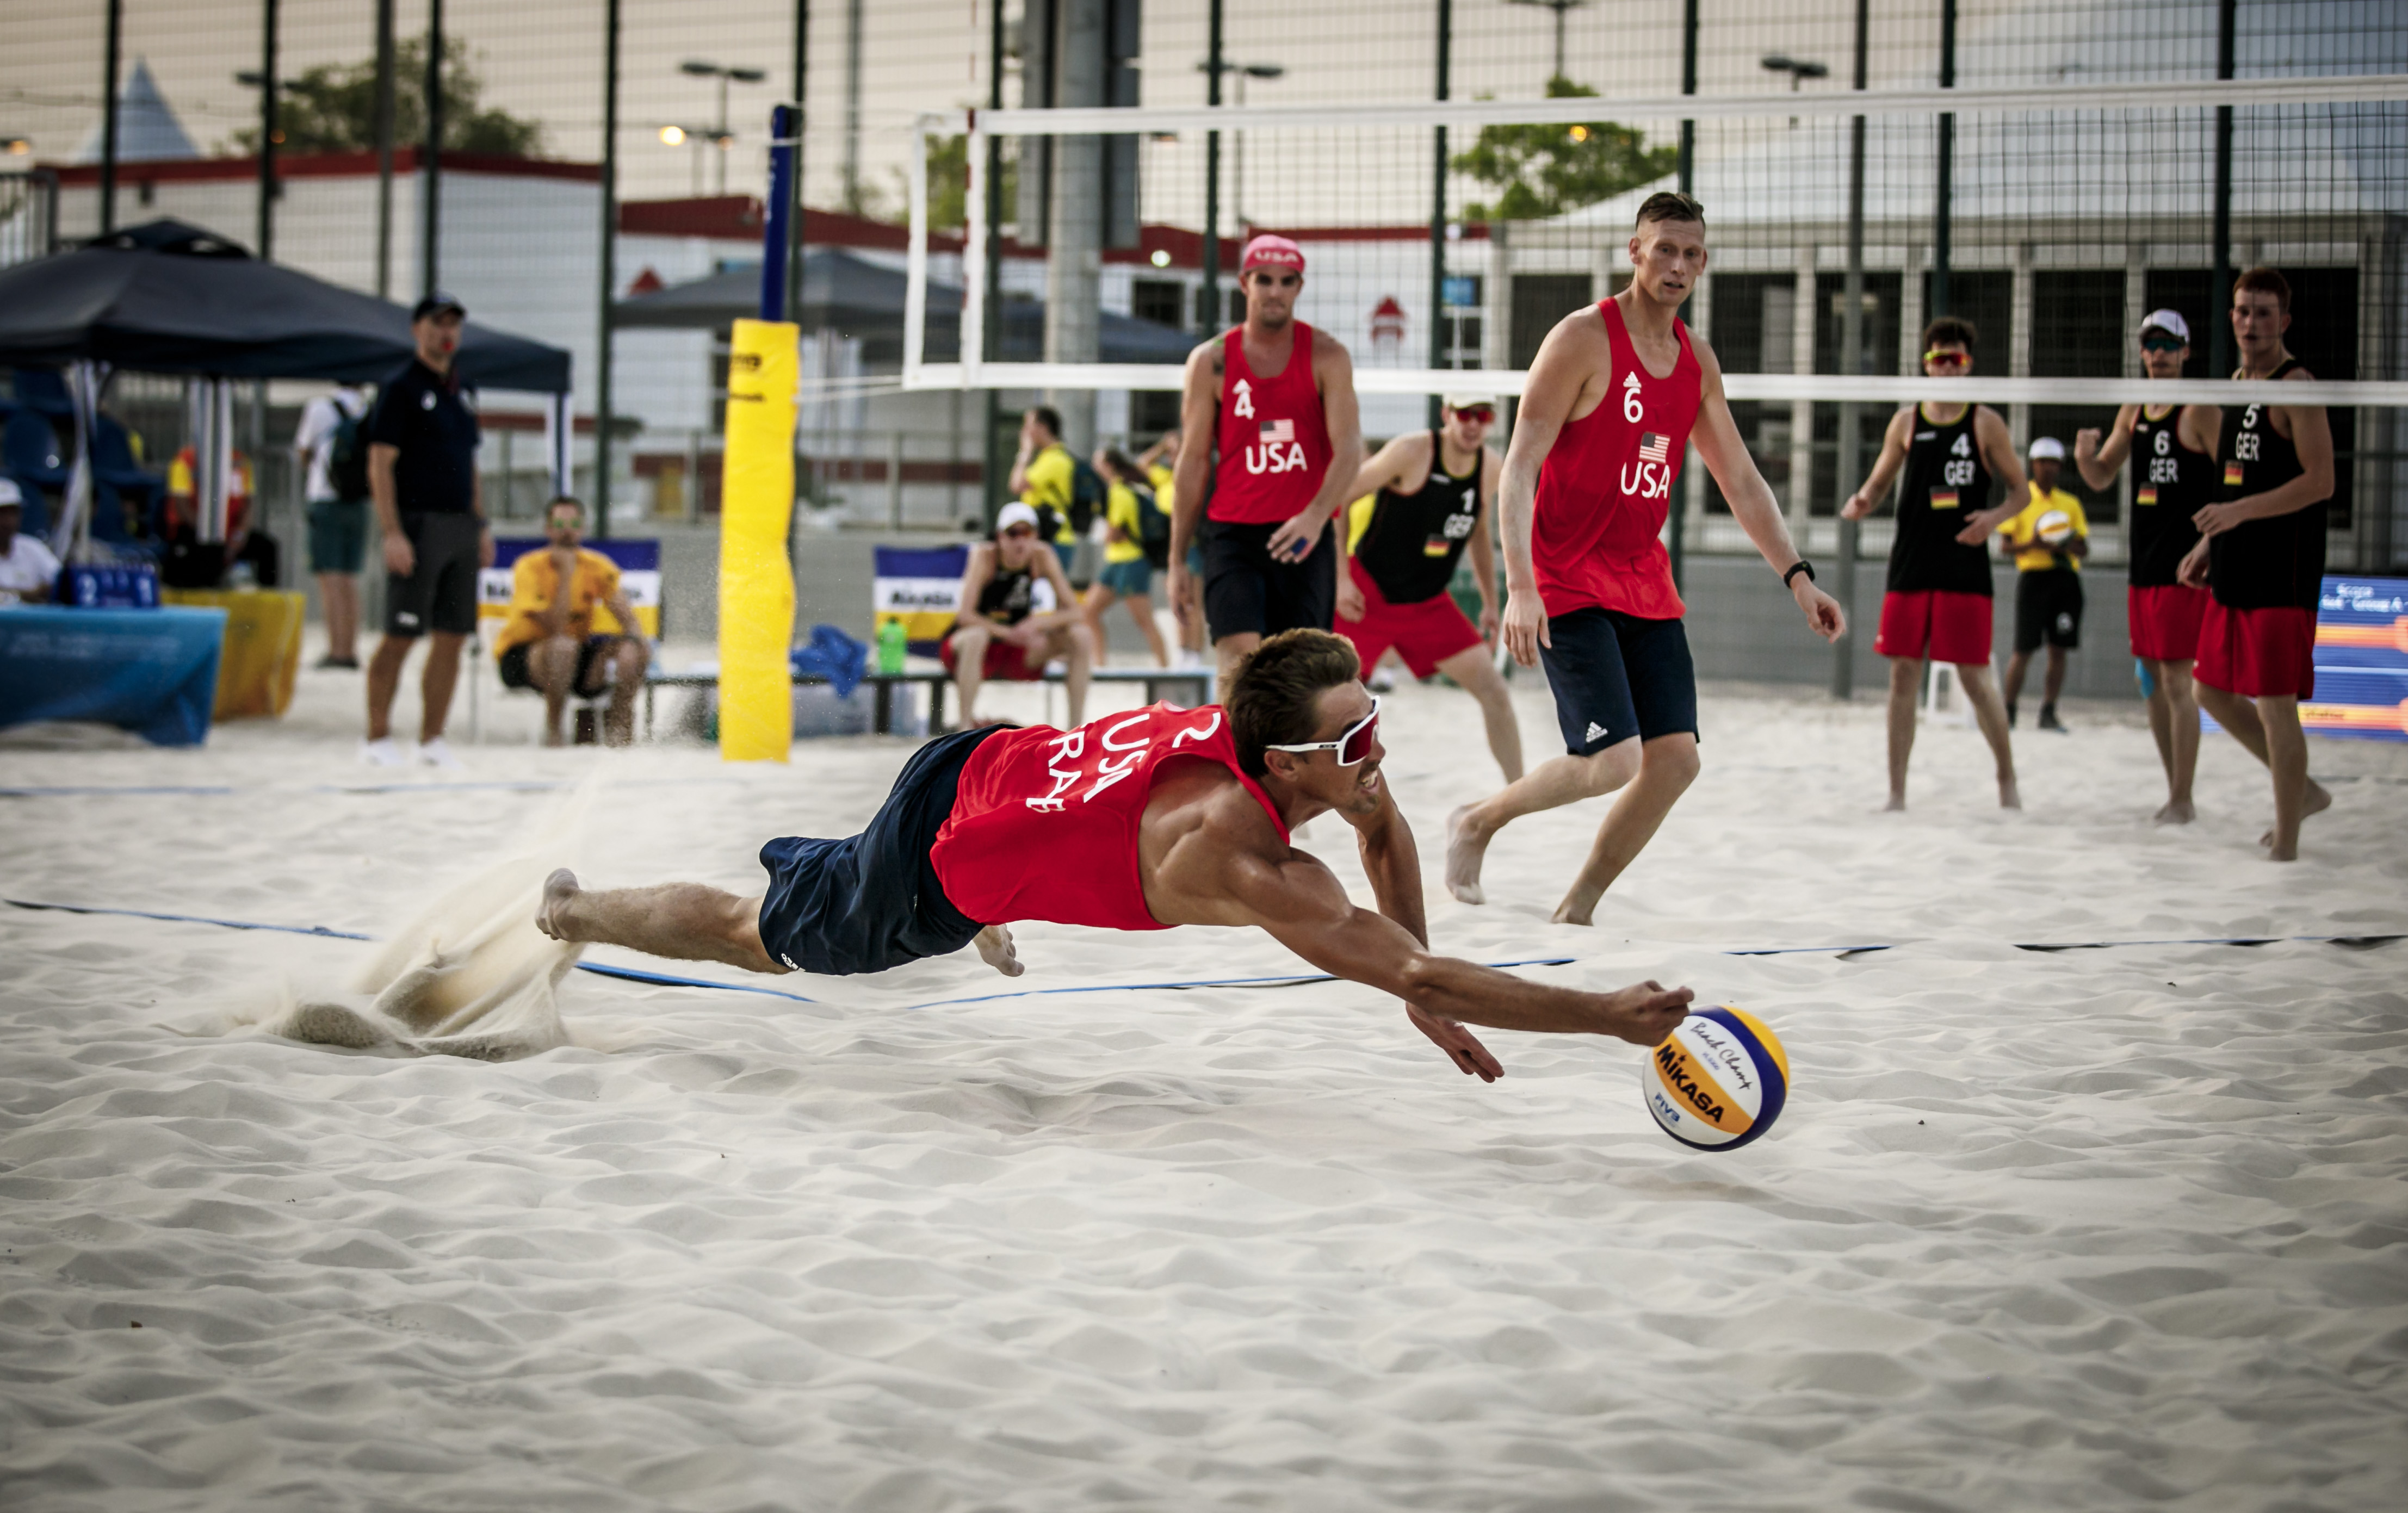 News - USA team: Four-men beach is very special to us